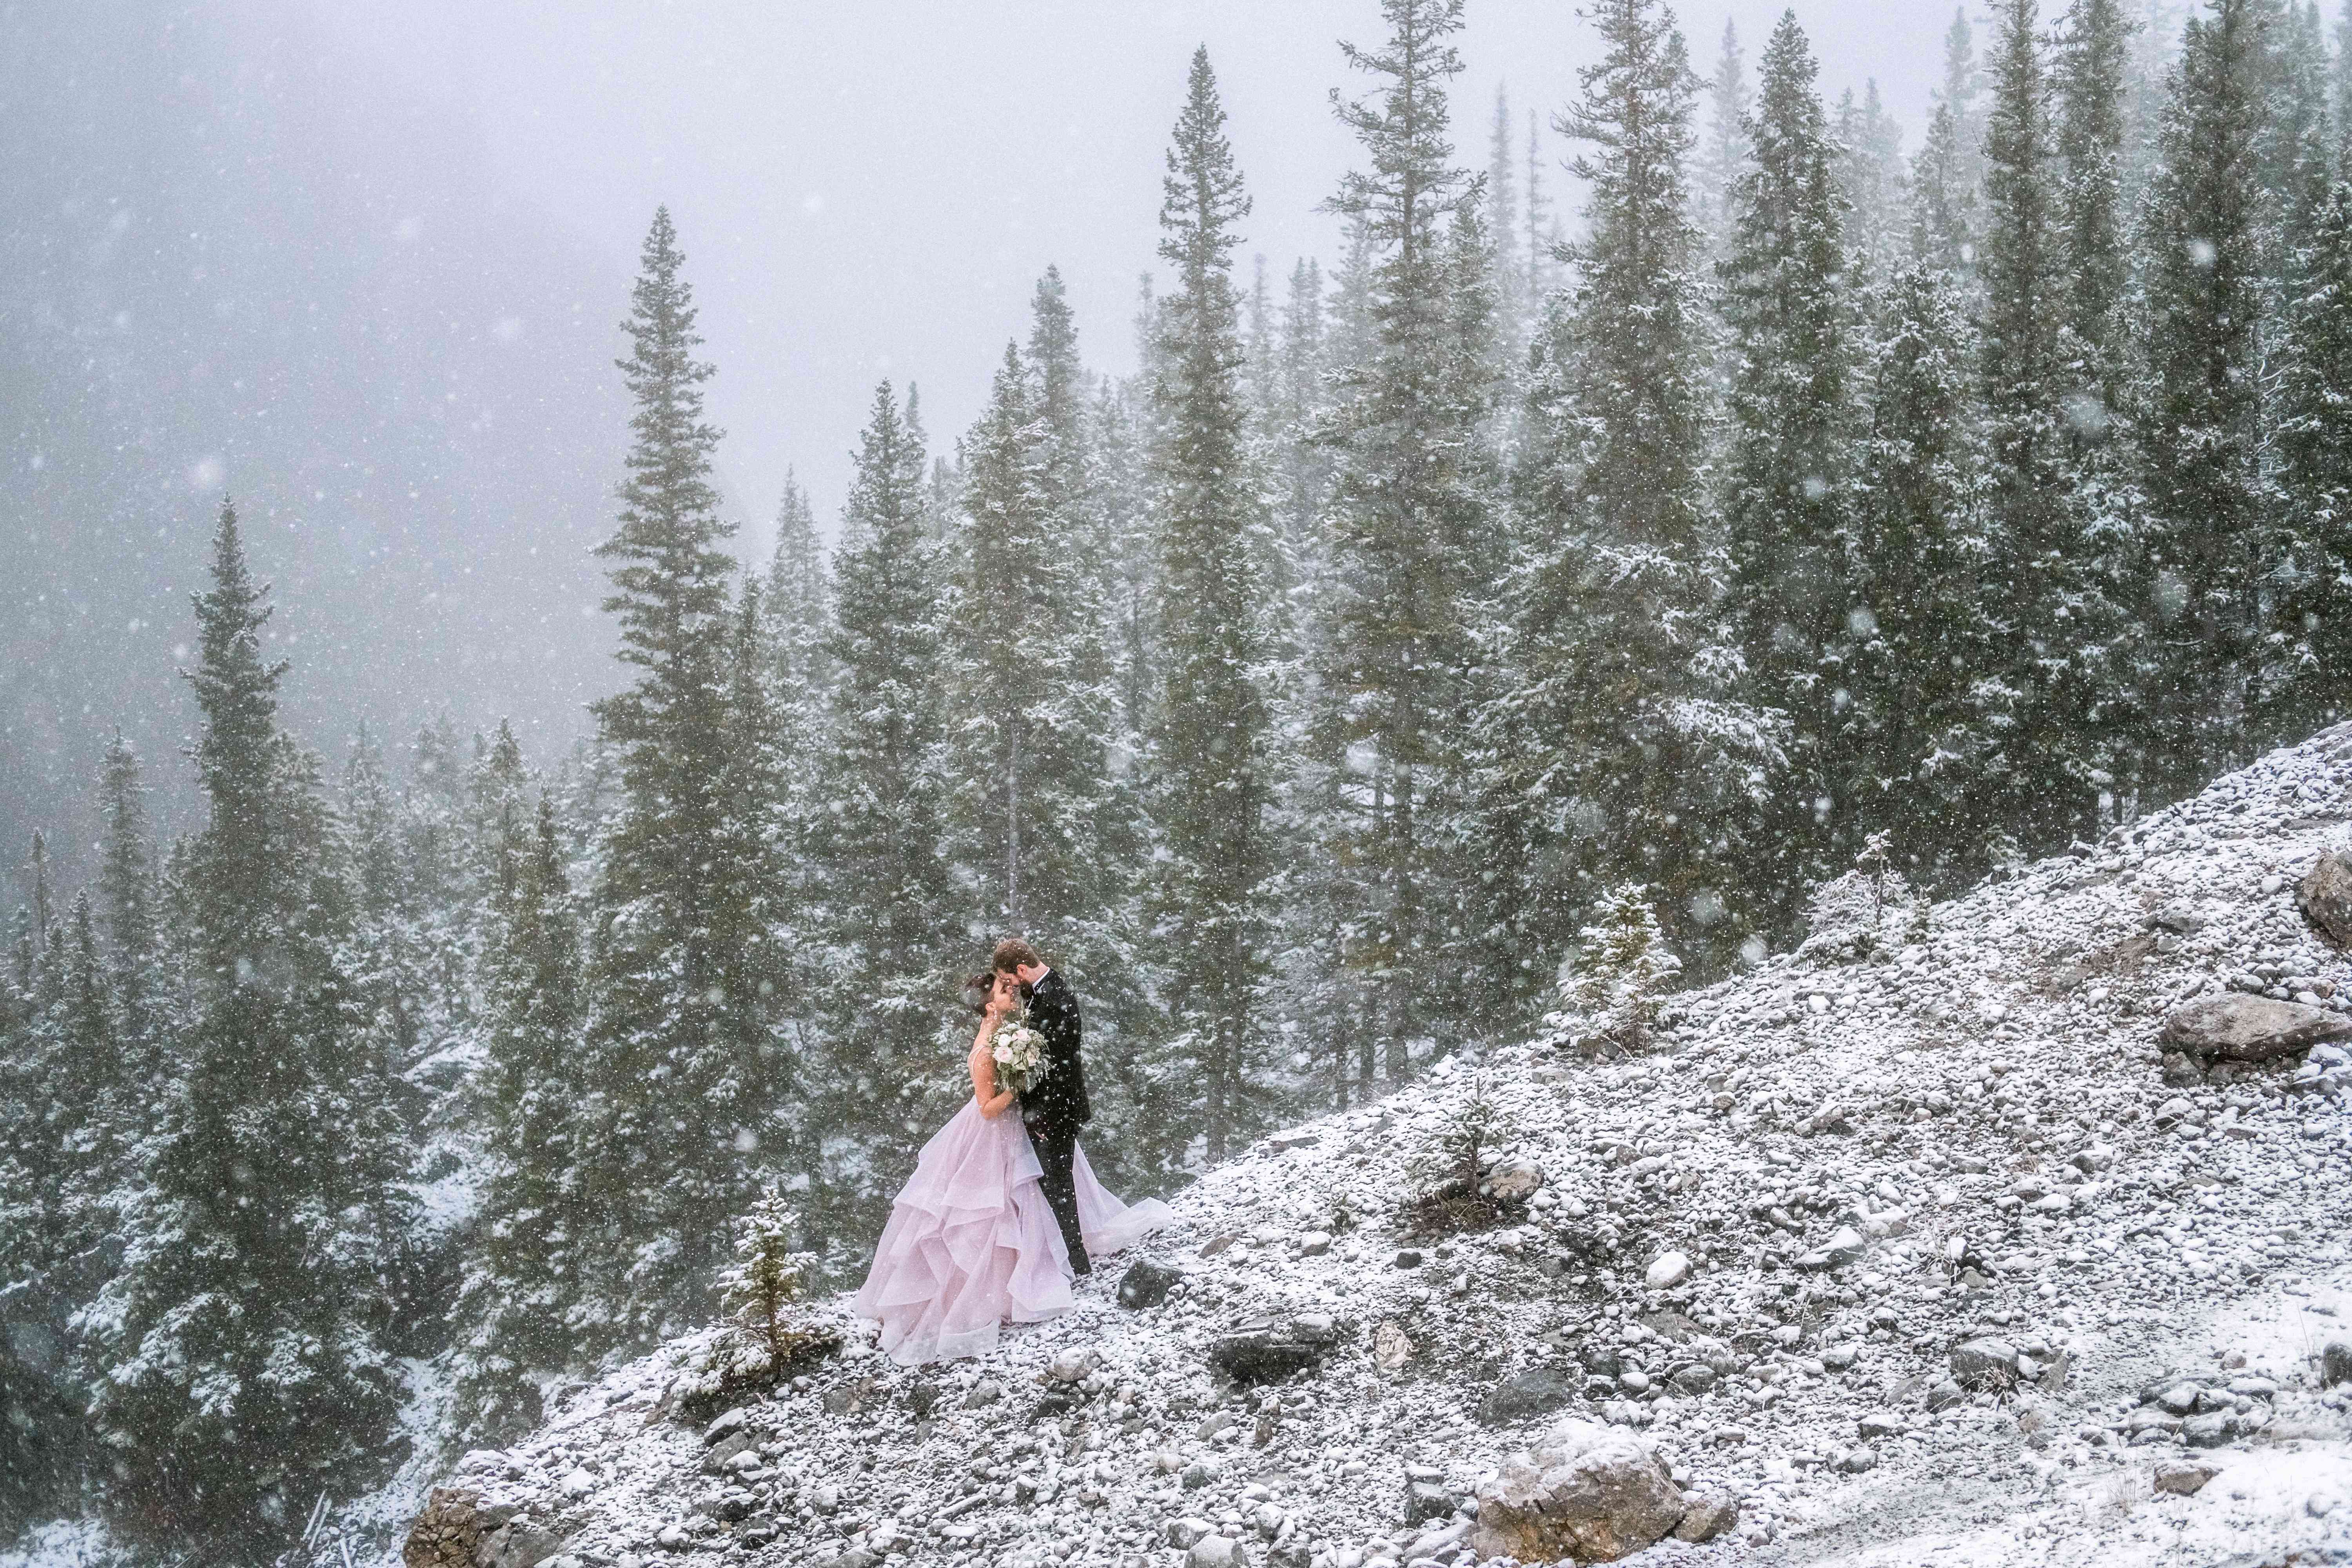 Bride and groom kissing mountainside in the snow with evergreen trees in the background